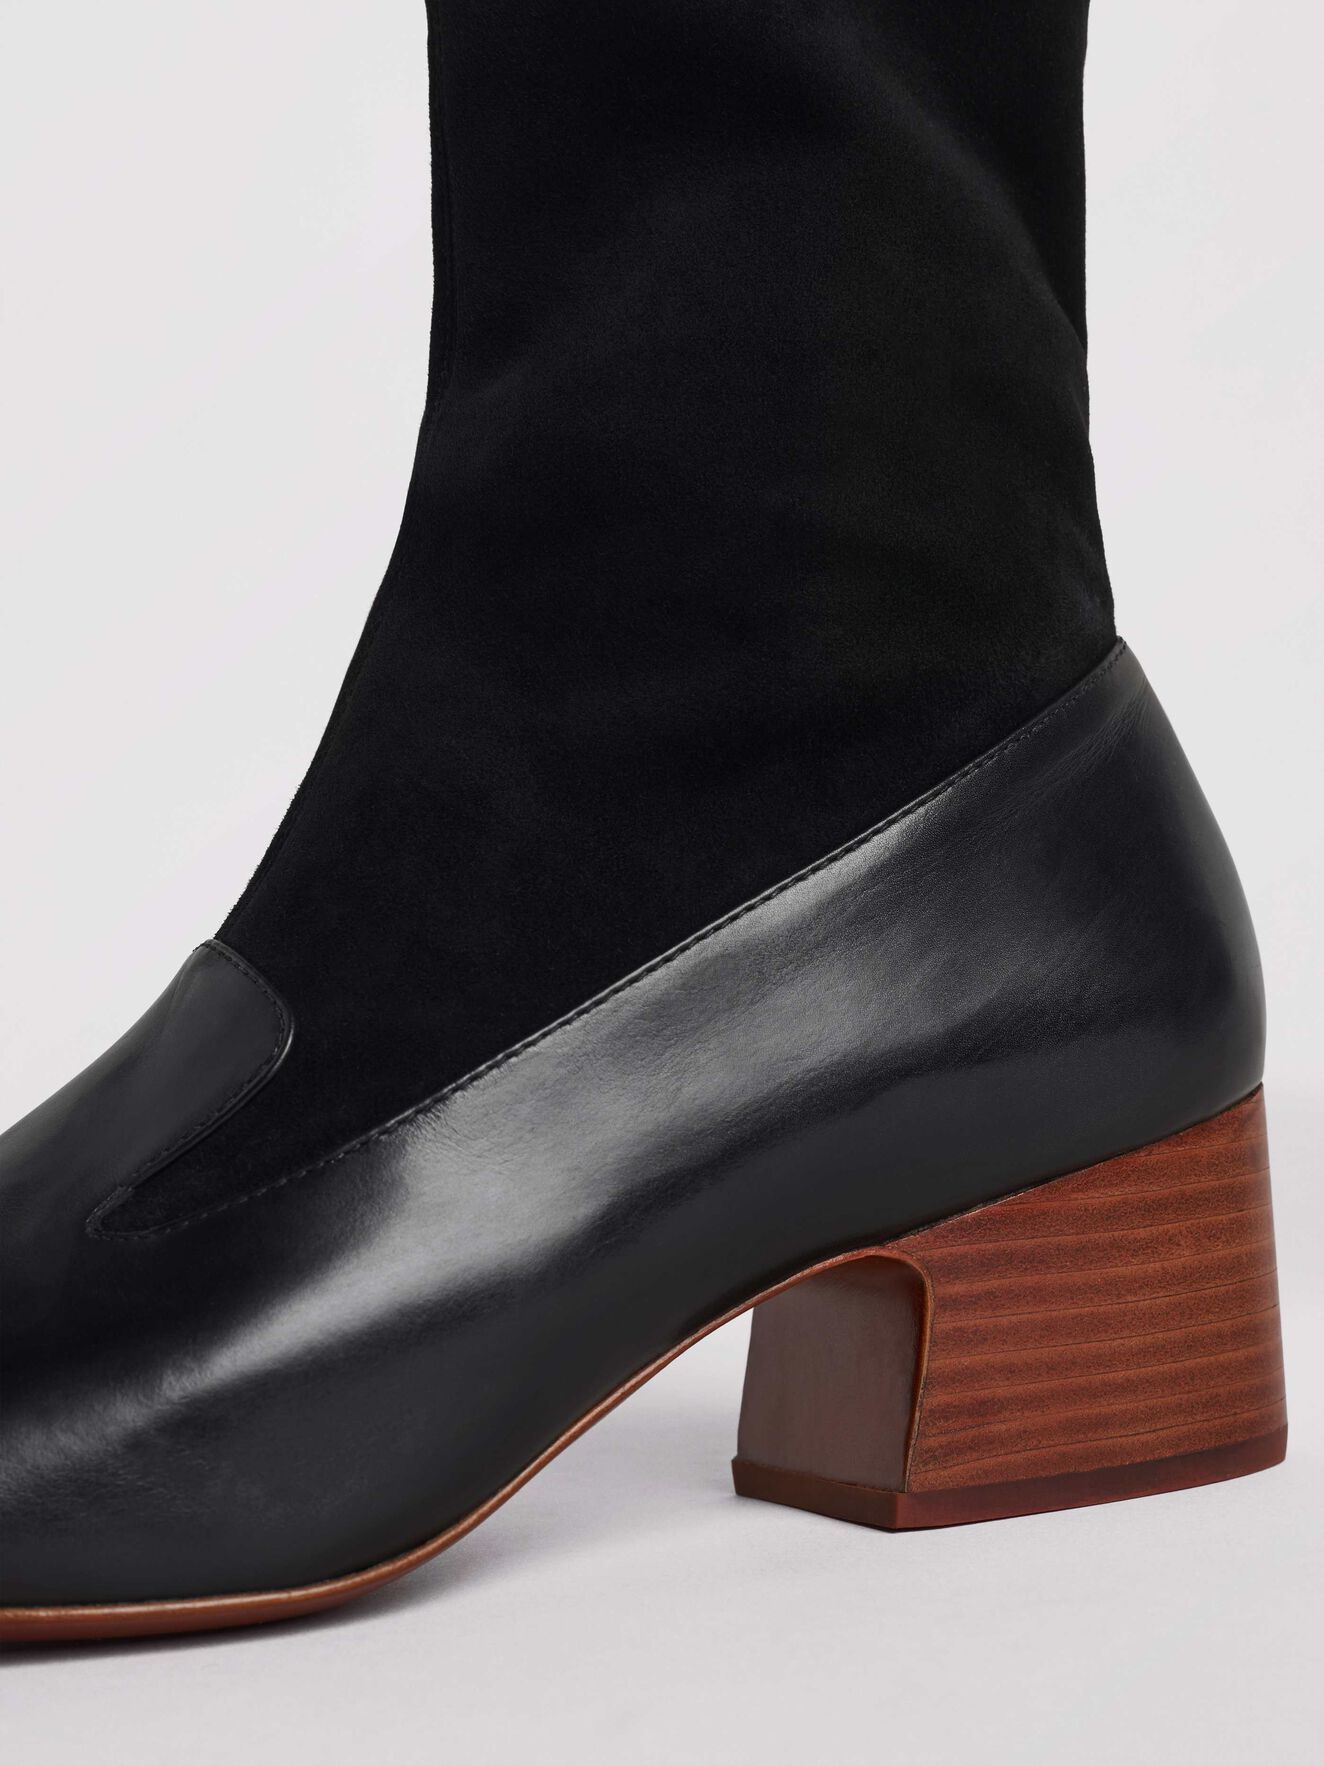 Bottasino Boots in Black from Tiger of Sweden